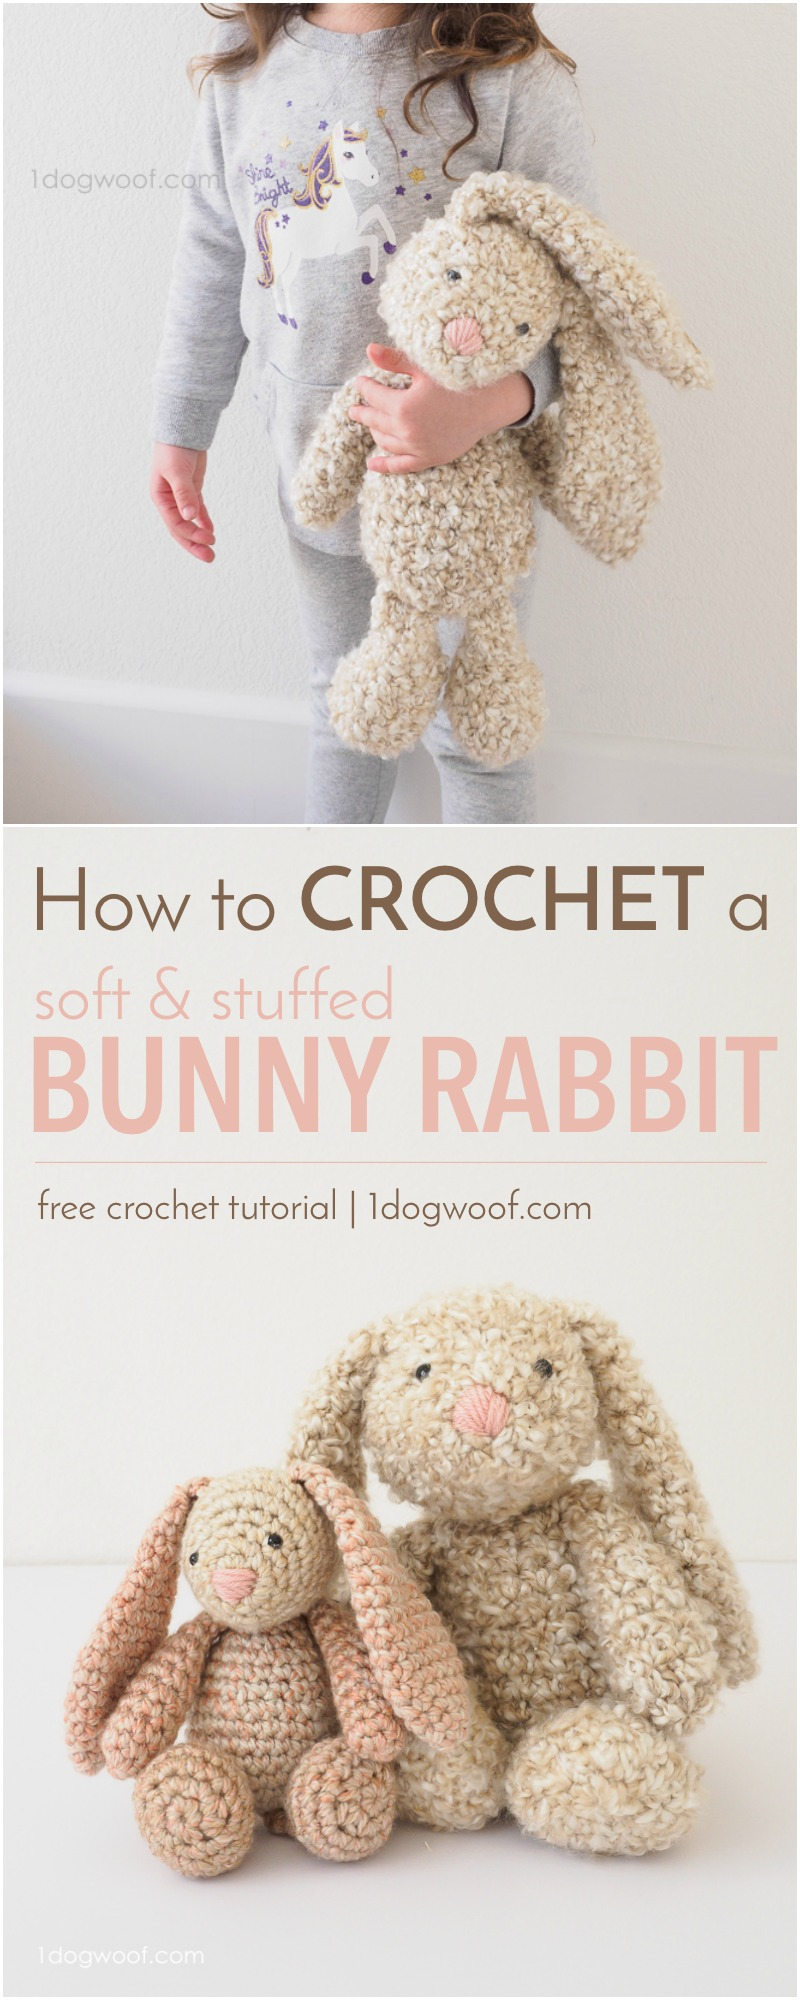 Classic Crochet Bunny Pattern for Easter - One Dog Woof